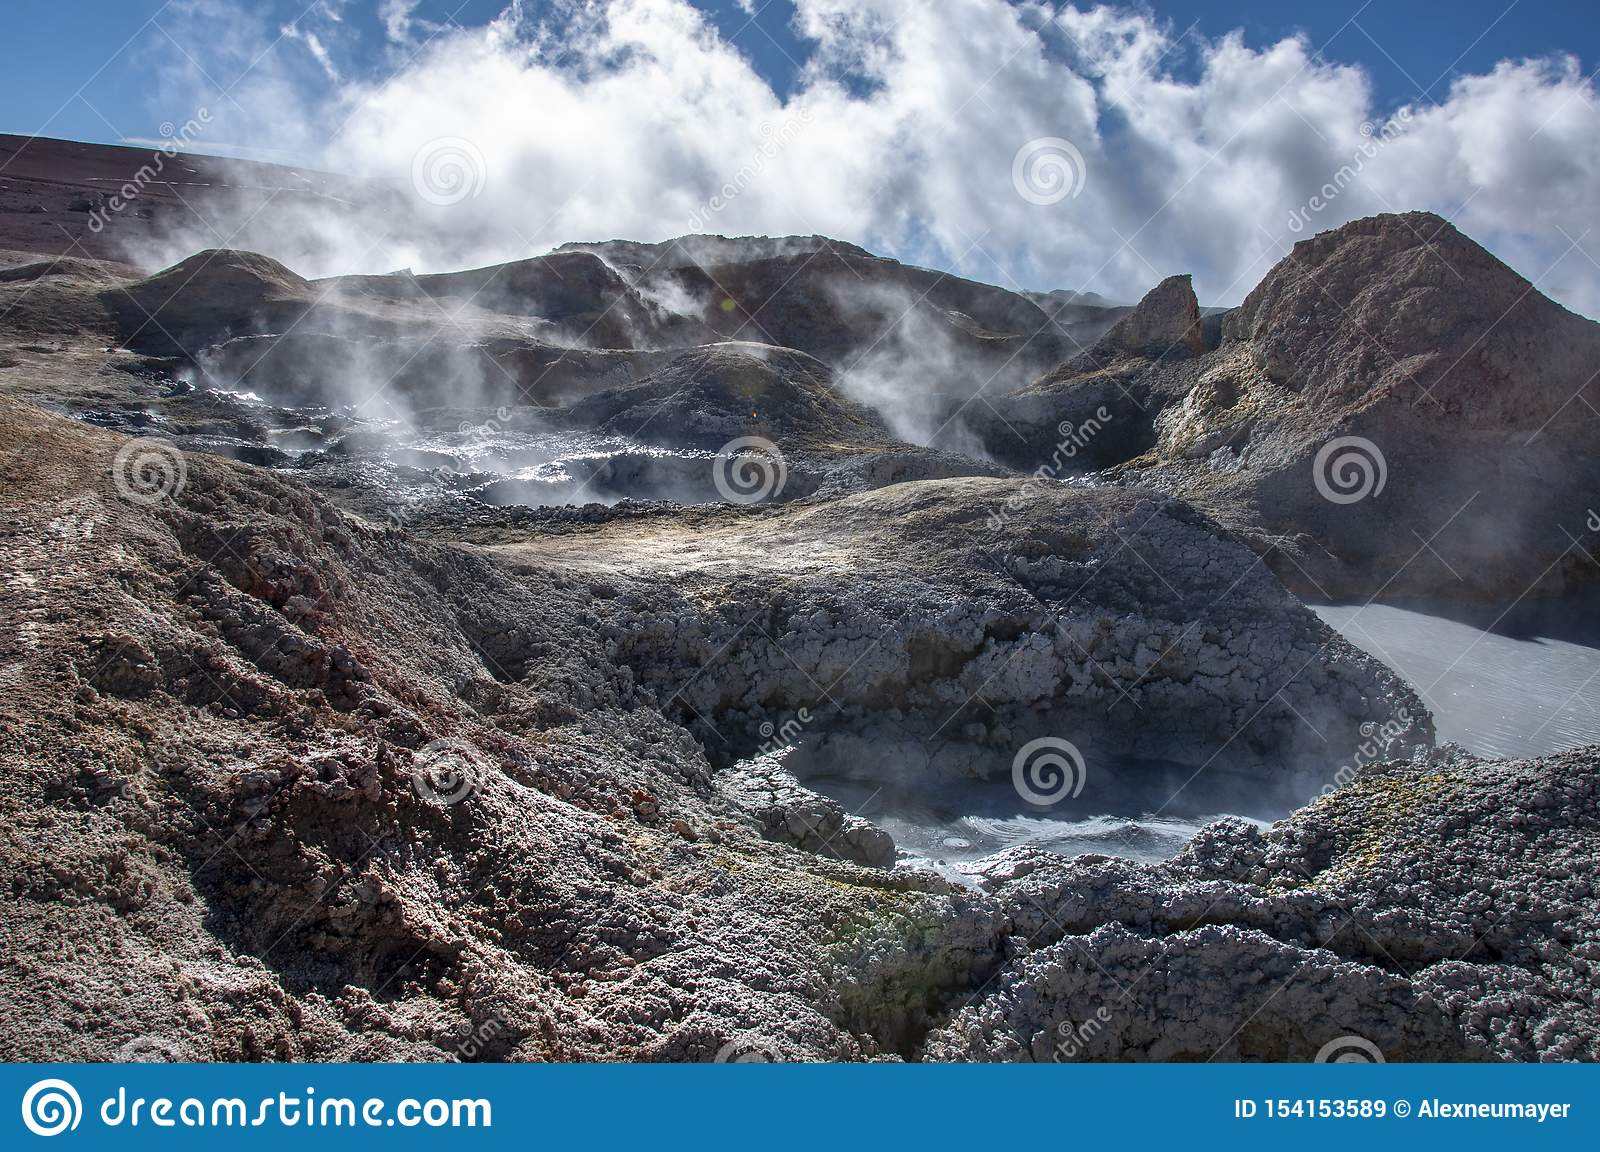 Bolivian Lagunas In The Andean Mountain Range Stock Image Image Of Flamingo Dust 154153589